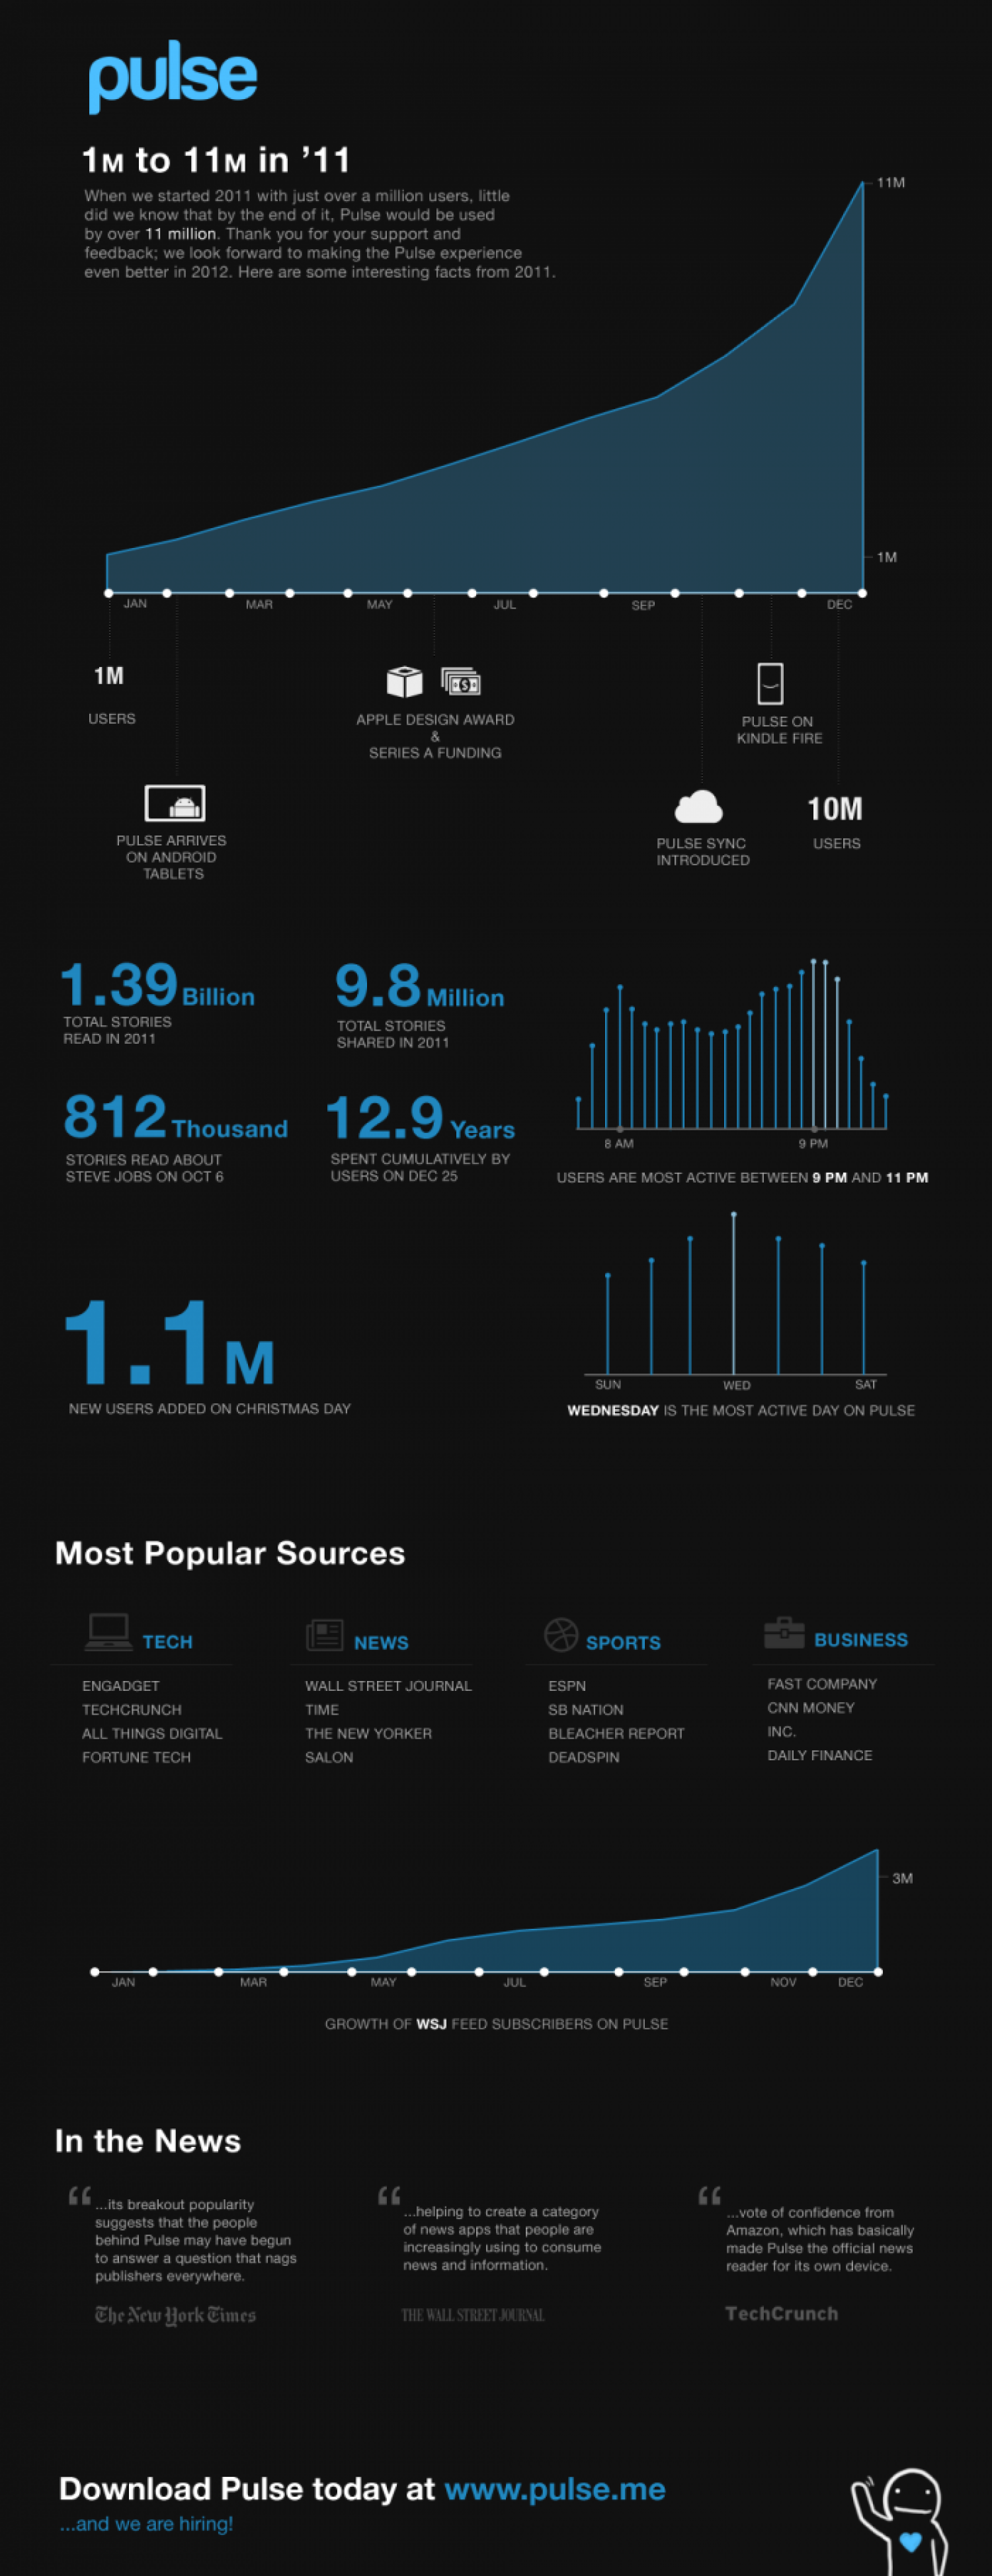 Pulse: From 1M to 11M Users in 2011 Infographic